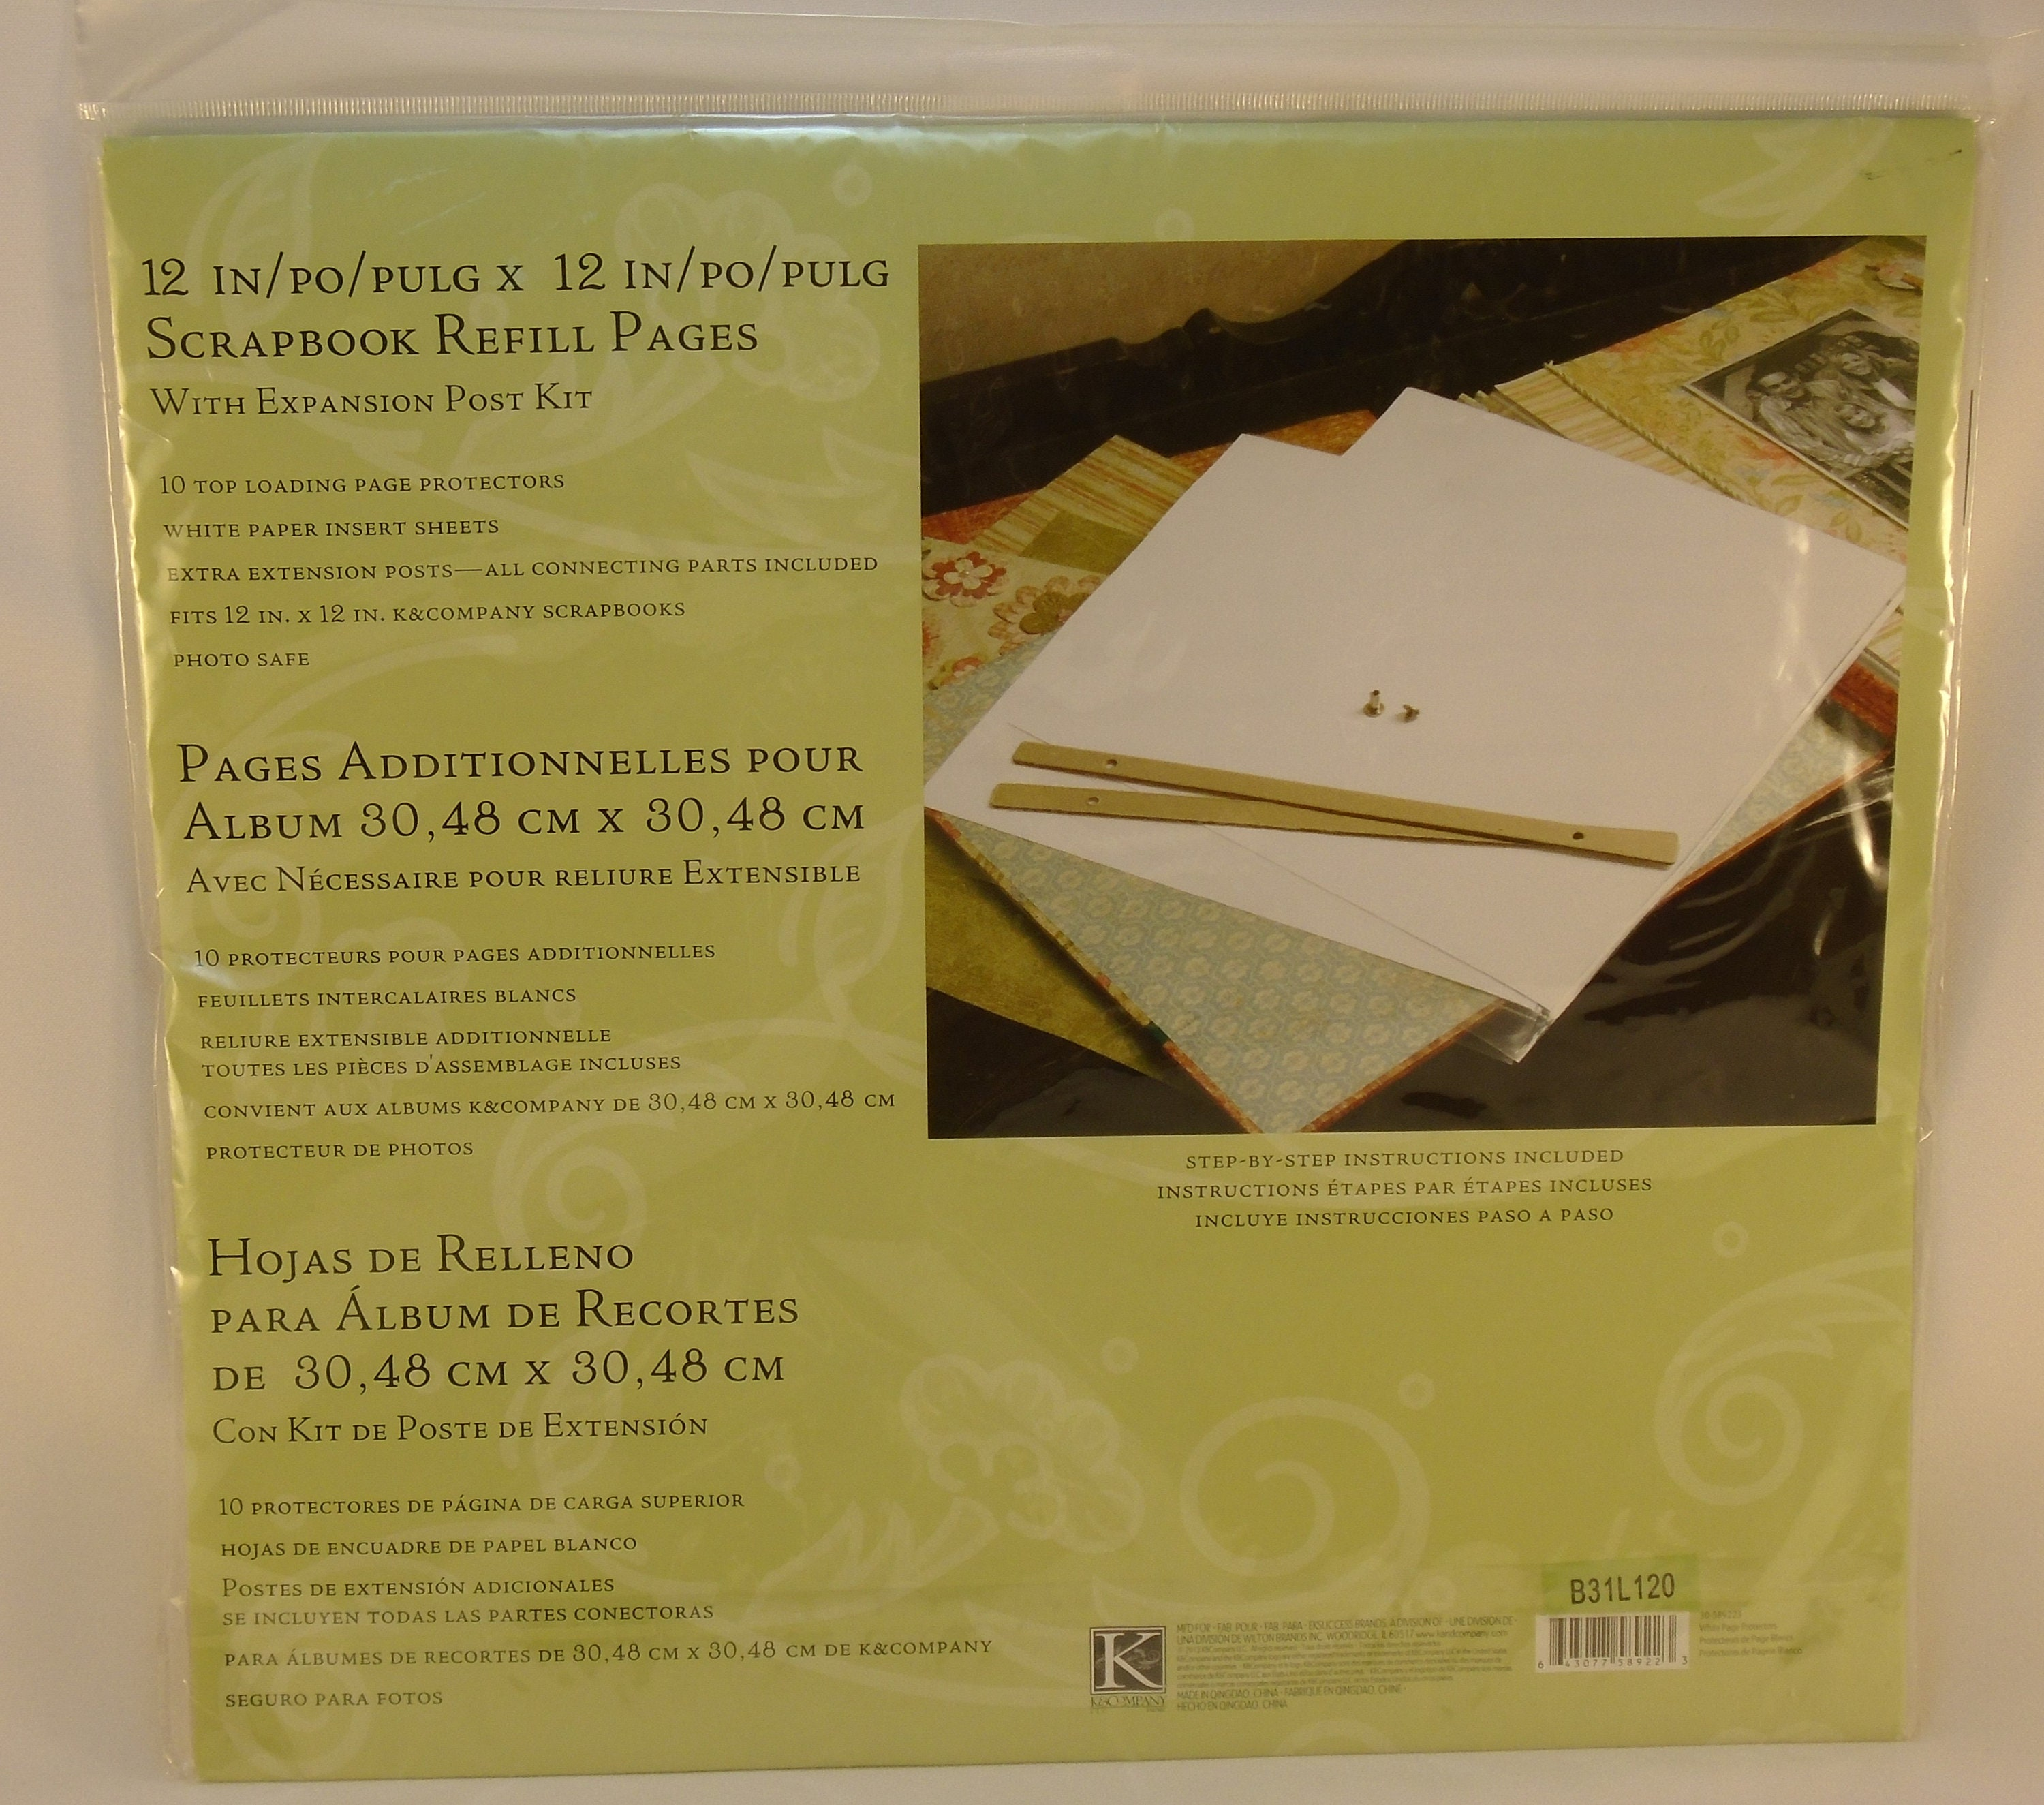 Kc Ompany Scrapbook Refill Pages 12x12 Inches Expansion Post Etsy